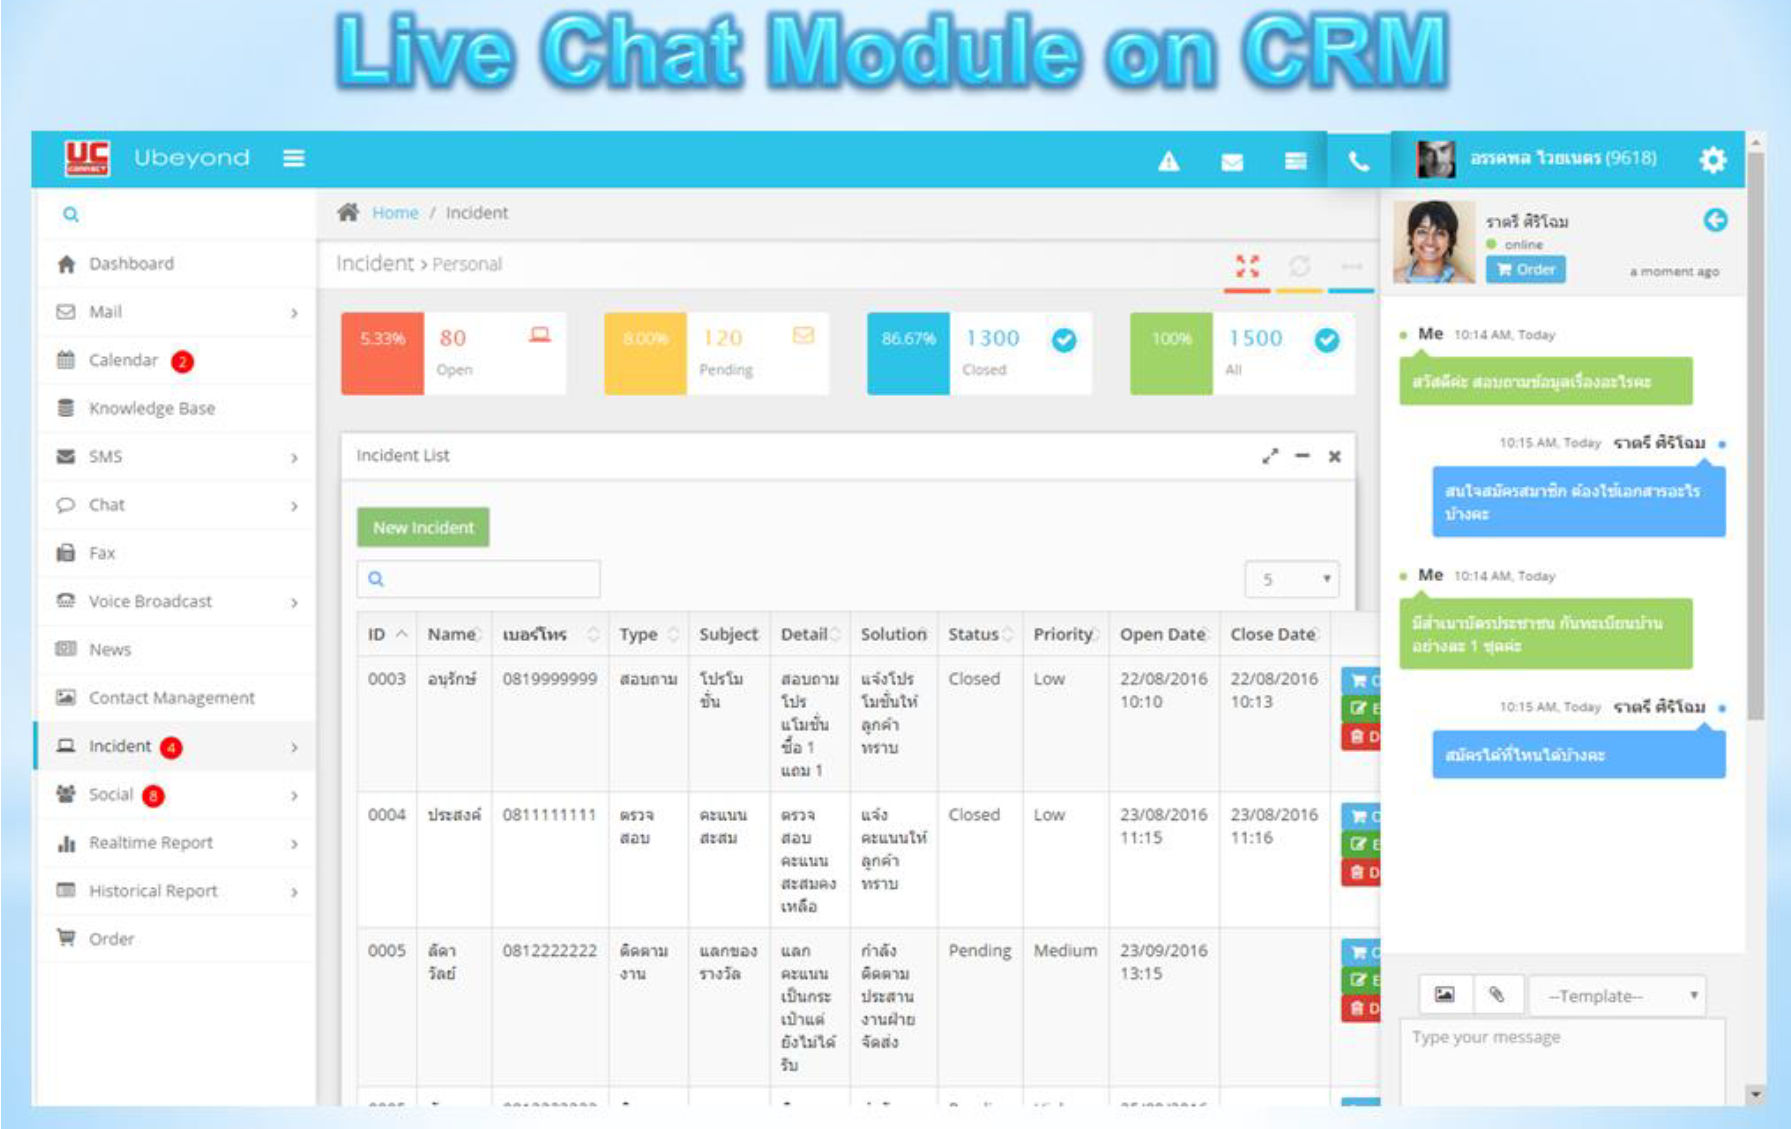 CRM_LIVECHAT